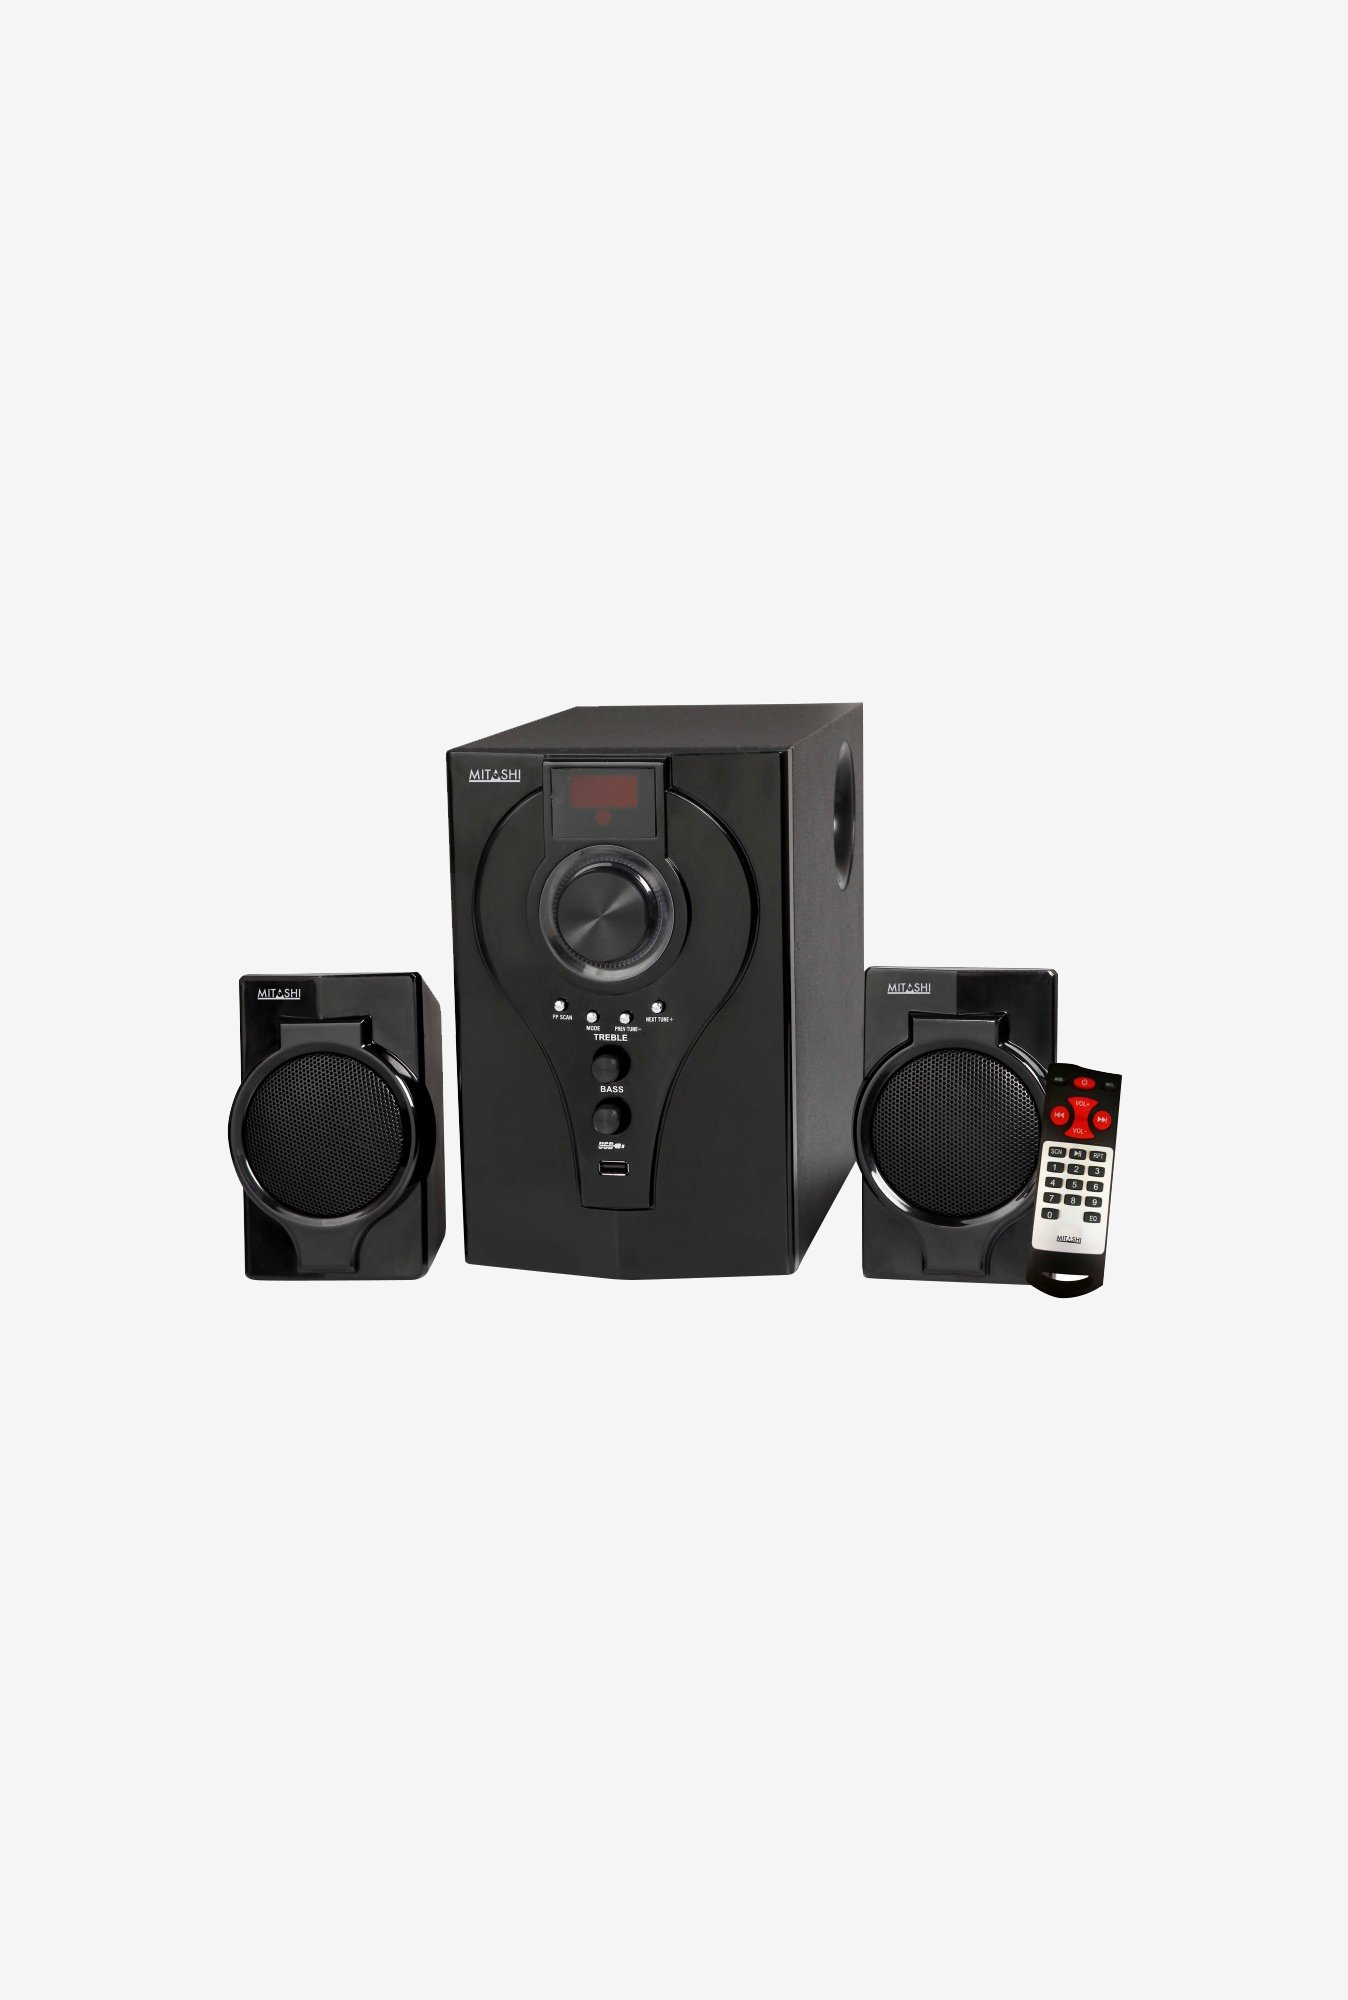 Mitashi HT 2430 FUR 2.1 Computer Speakers (Black)